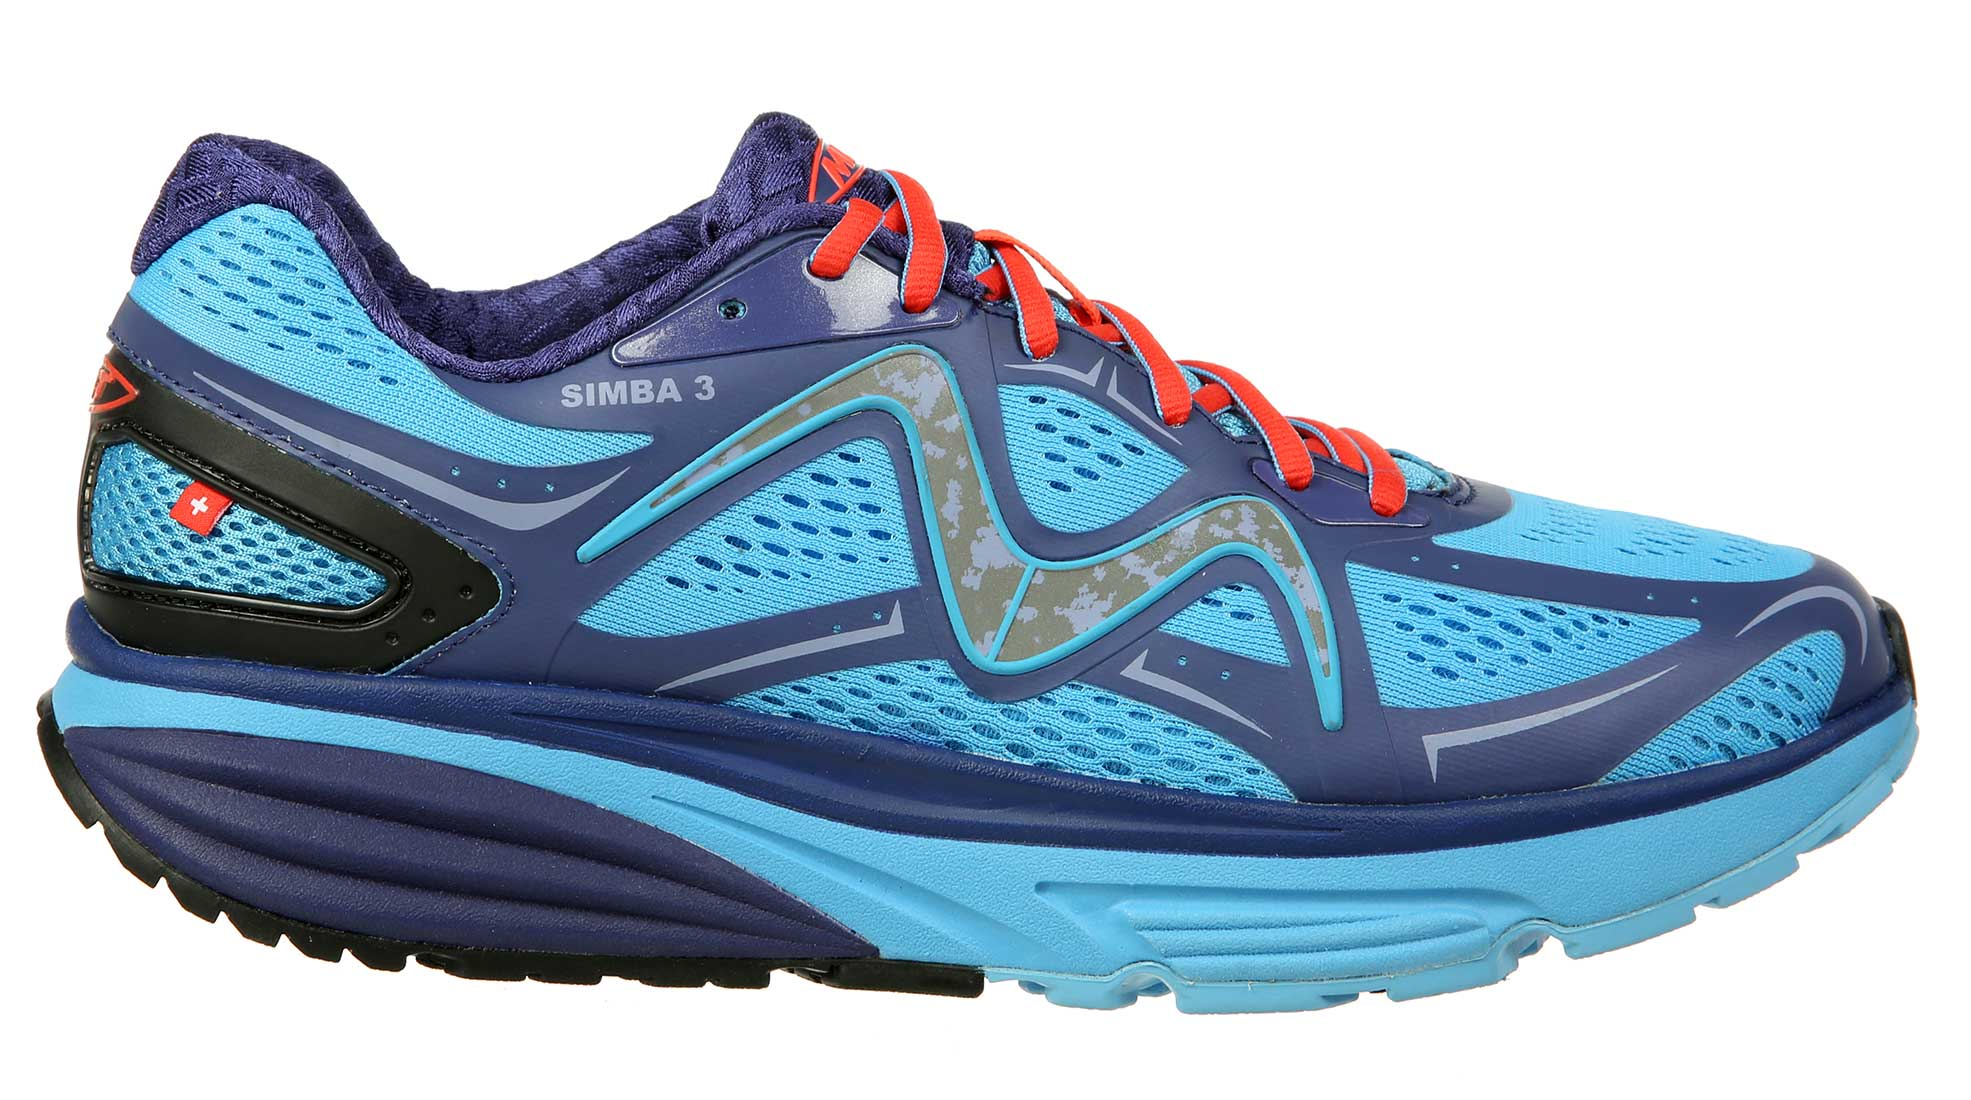 a7b0735443 MBT Shoes Men s Simba 3 Endurance Running Shoes - 702027 - The MBT Simba is  an athletic fitness running shoe built to increase your active lifestyle  and aid ...